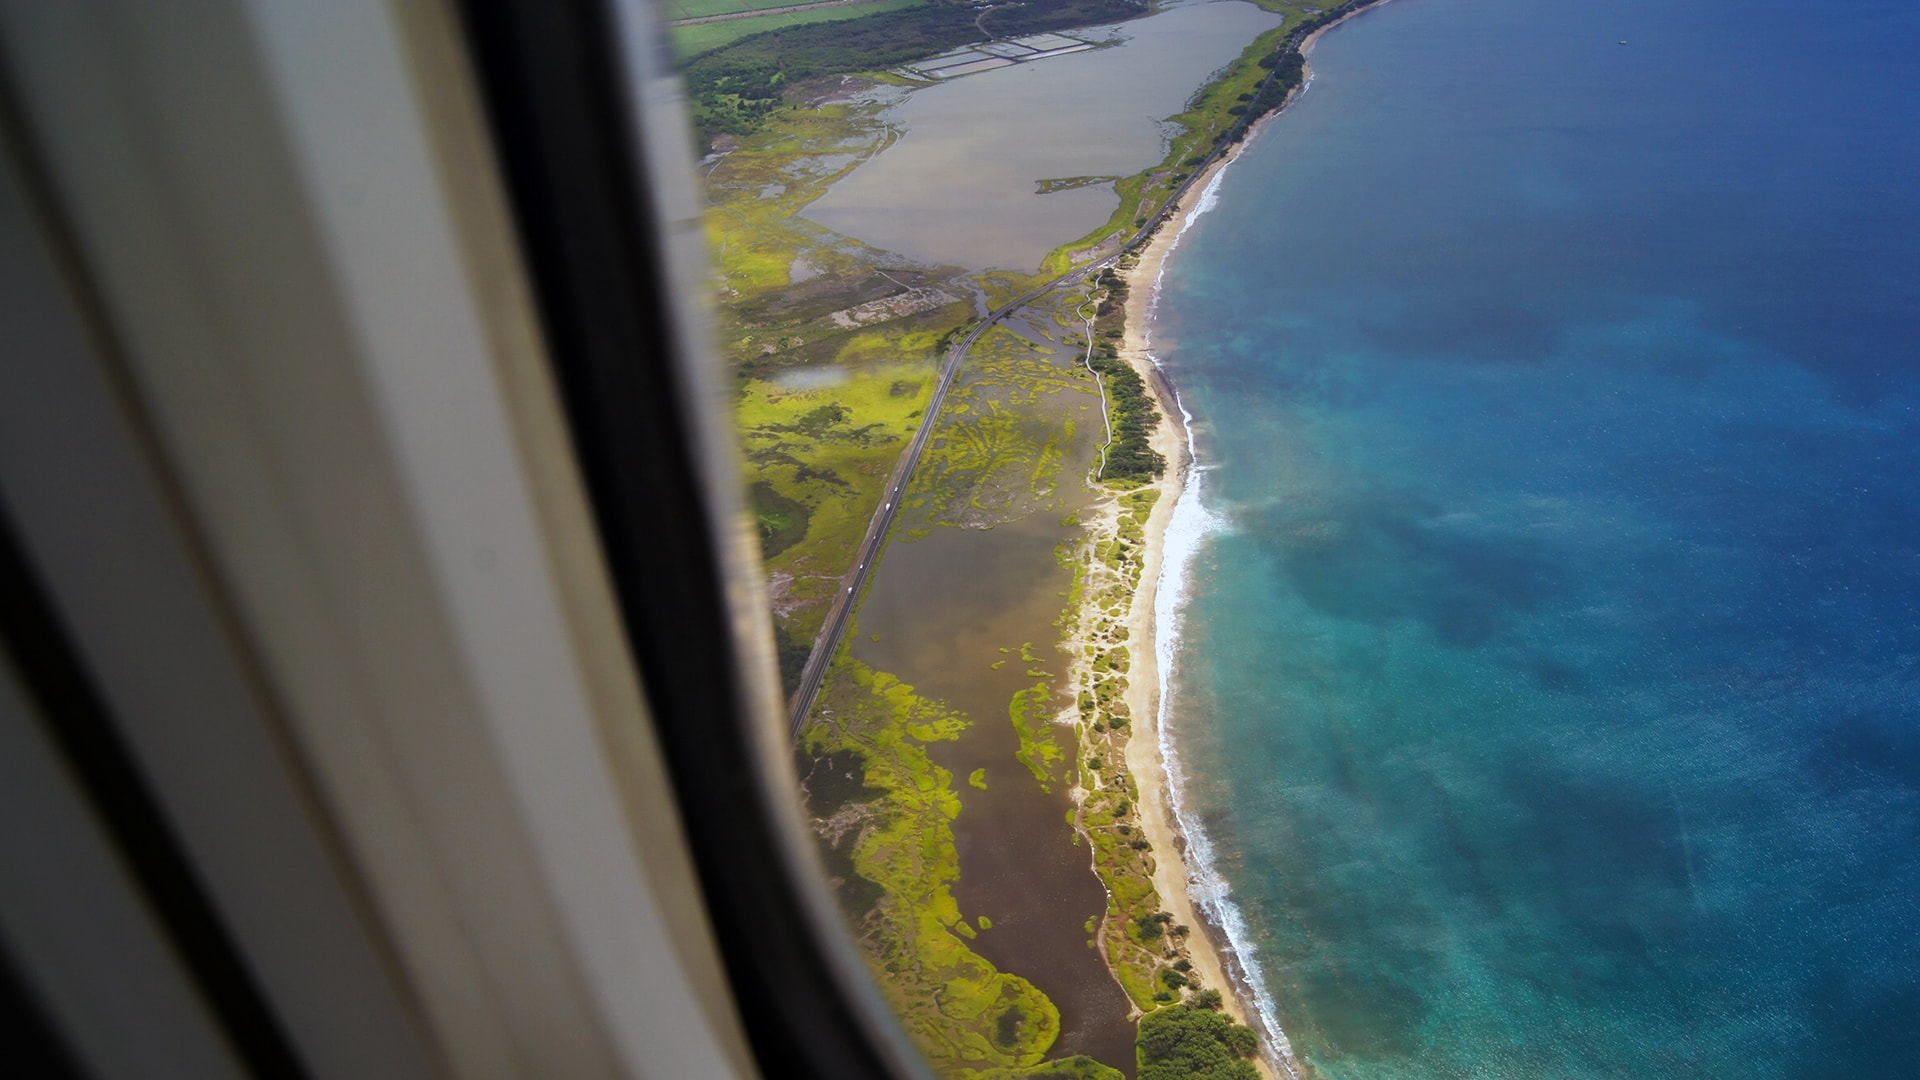 maui aerial view from plane